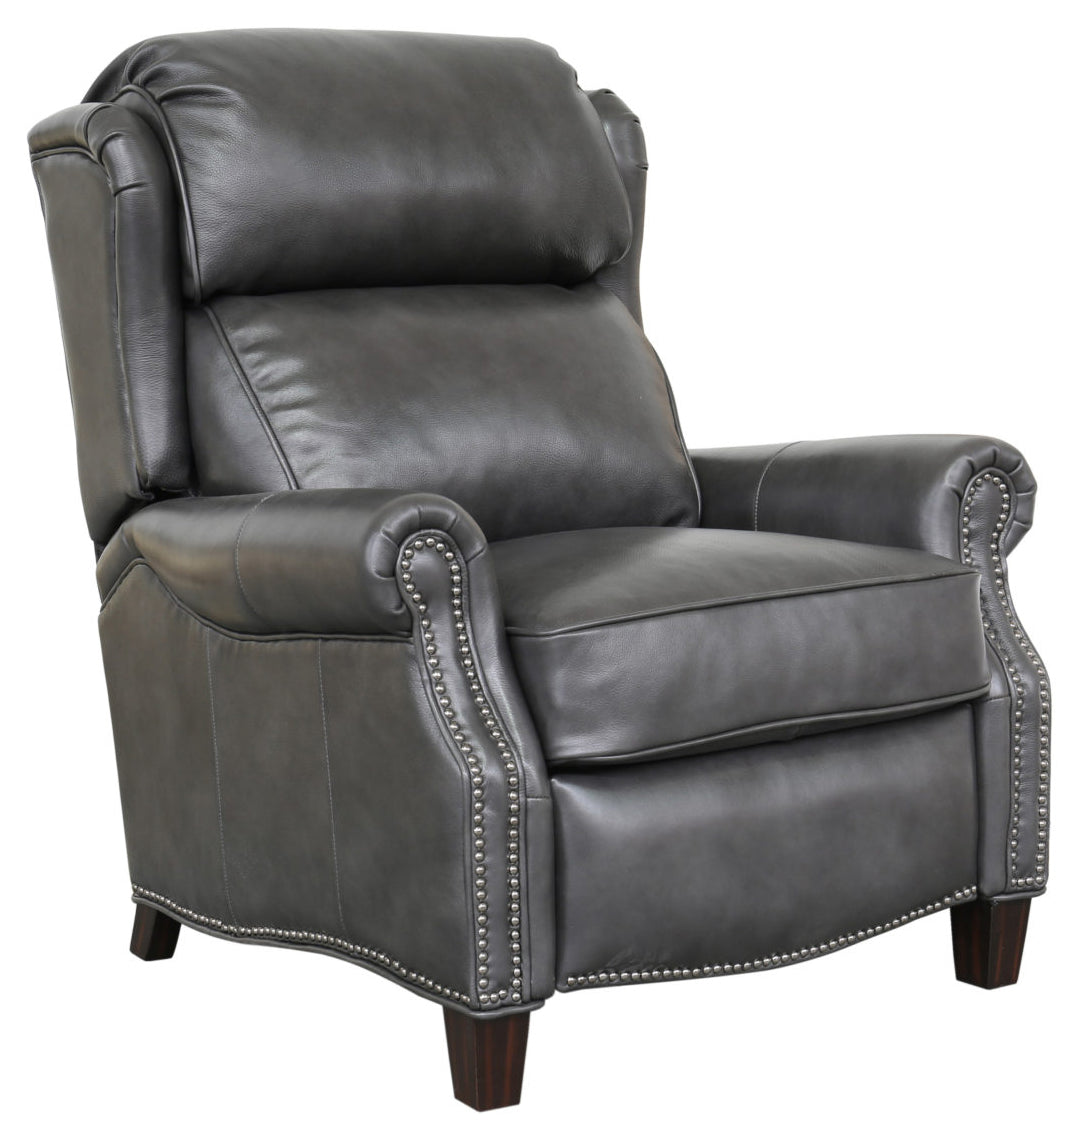 Picture of: Meade Recliner Wing Back Leather Chair Barcalounger Recliner Lift And Massage Chairs